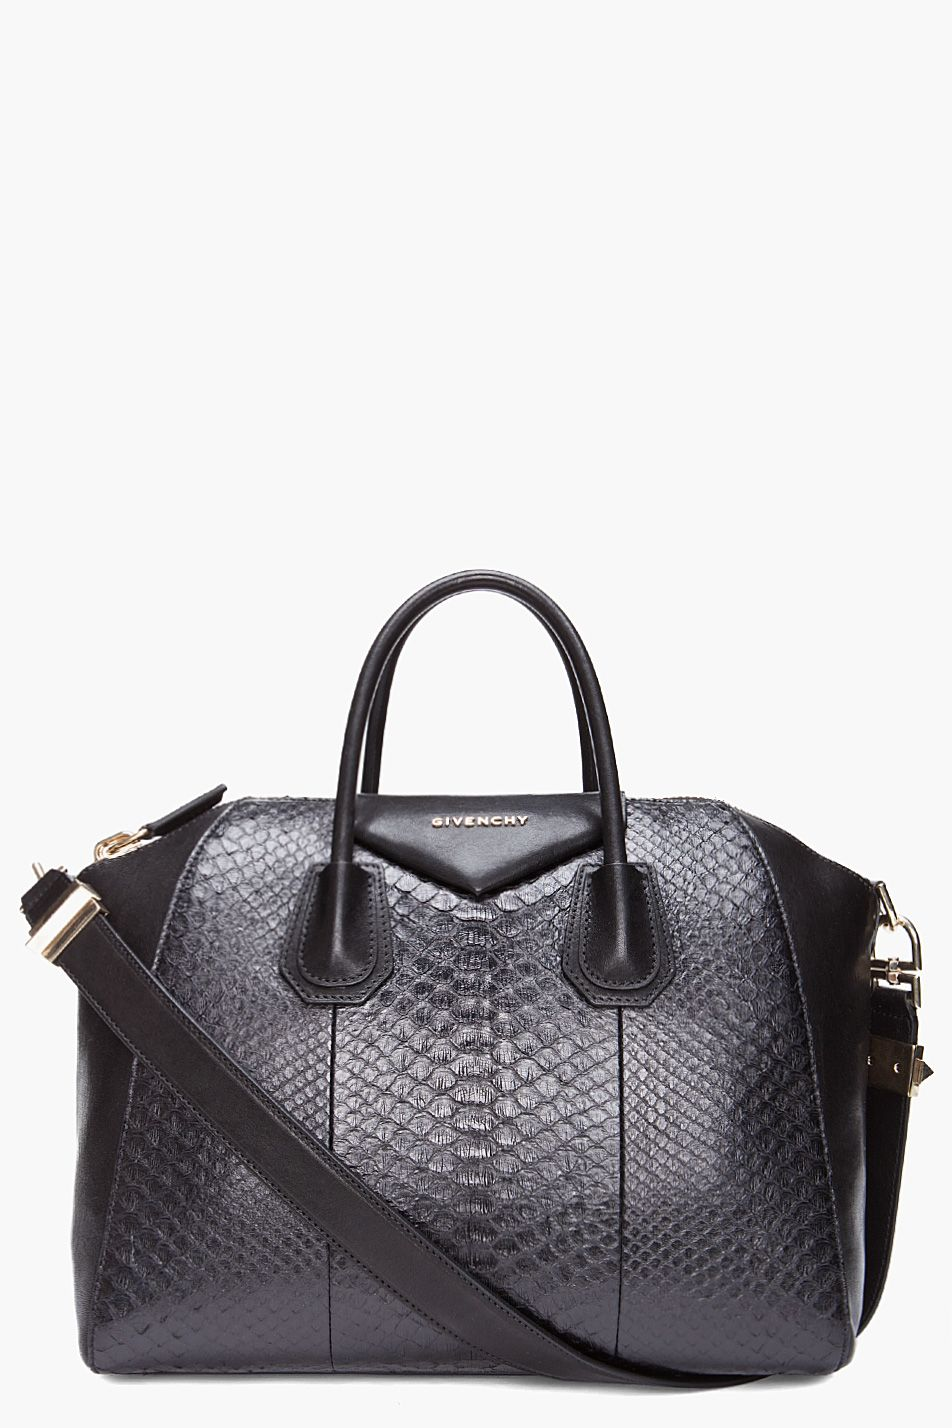 2bb7c17ffa Givenchy Medium Python Antigona Duffle Bag